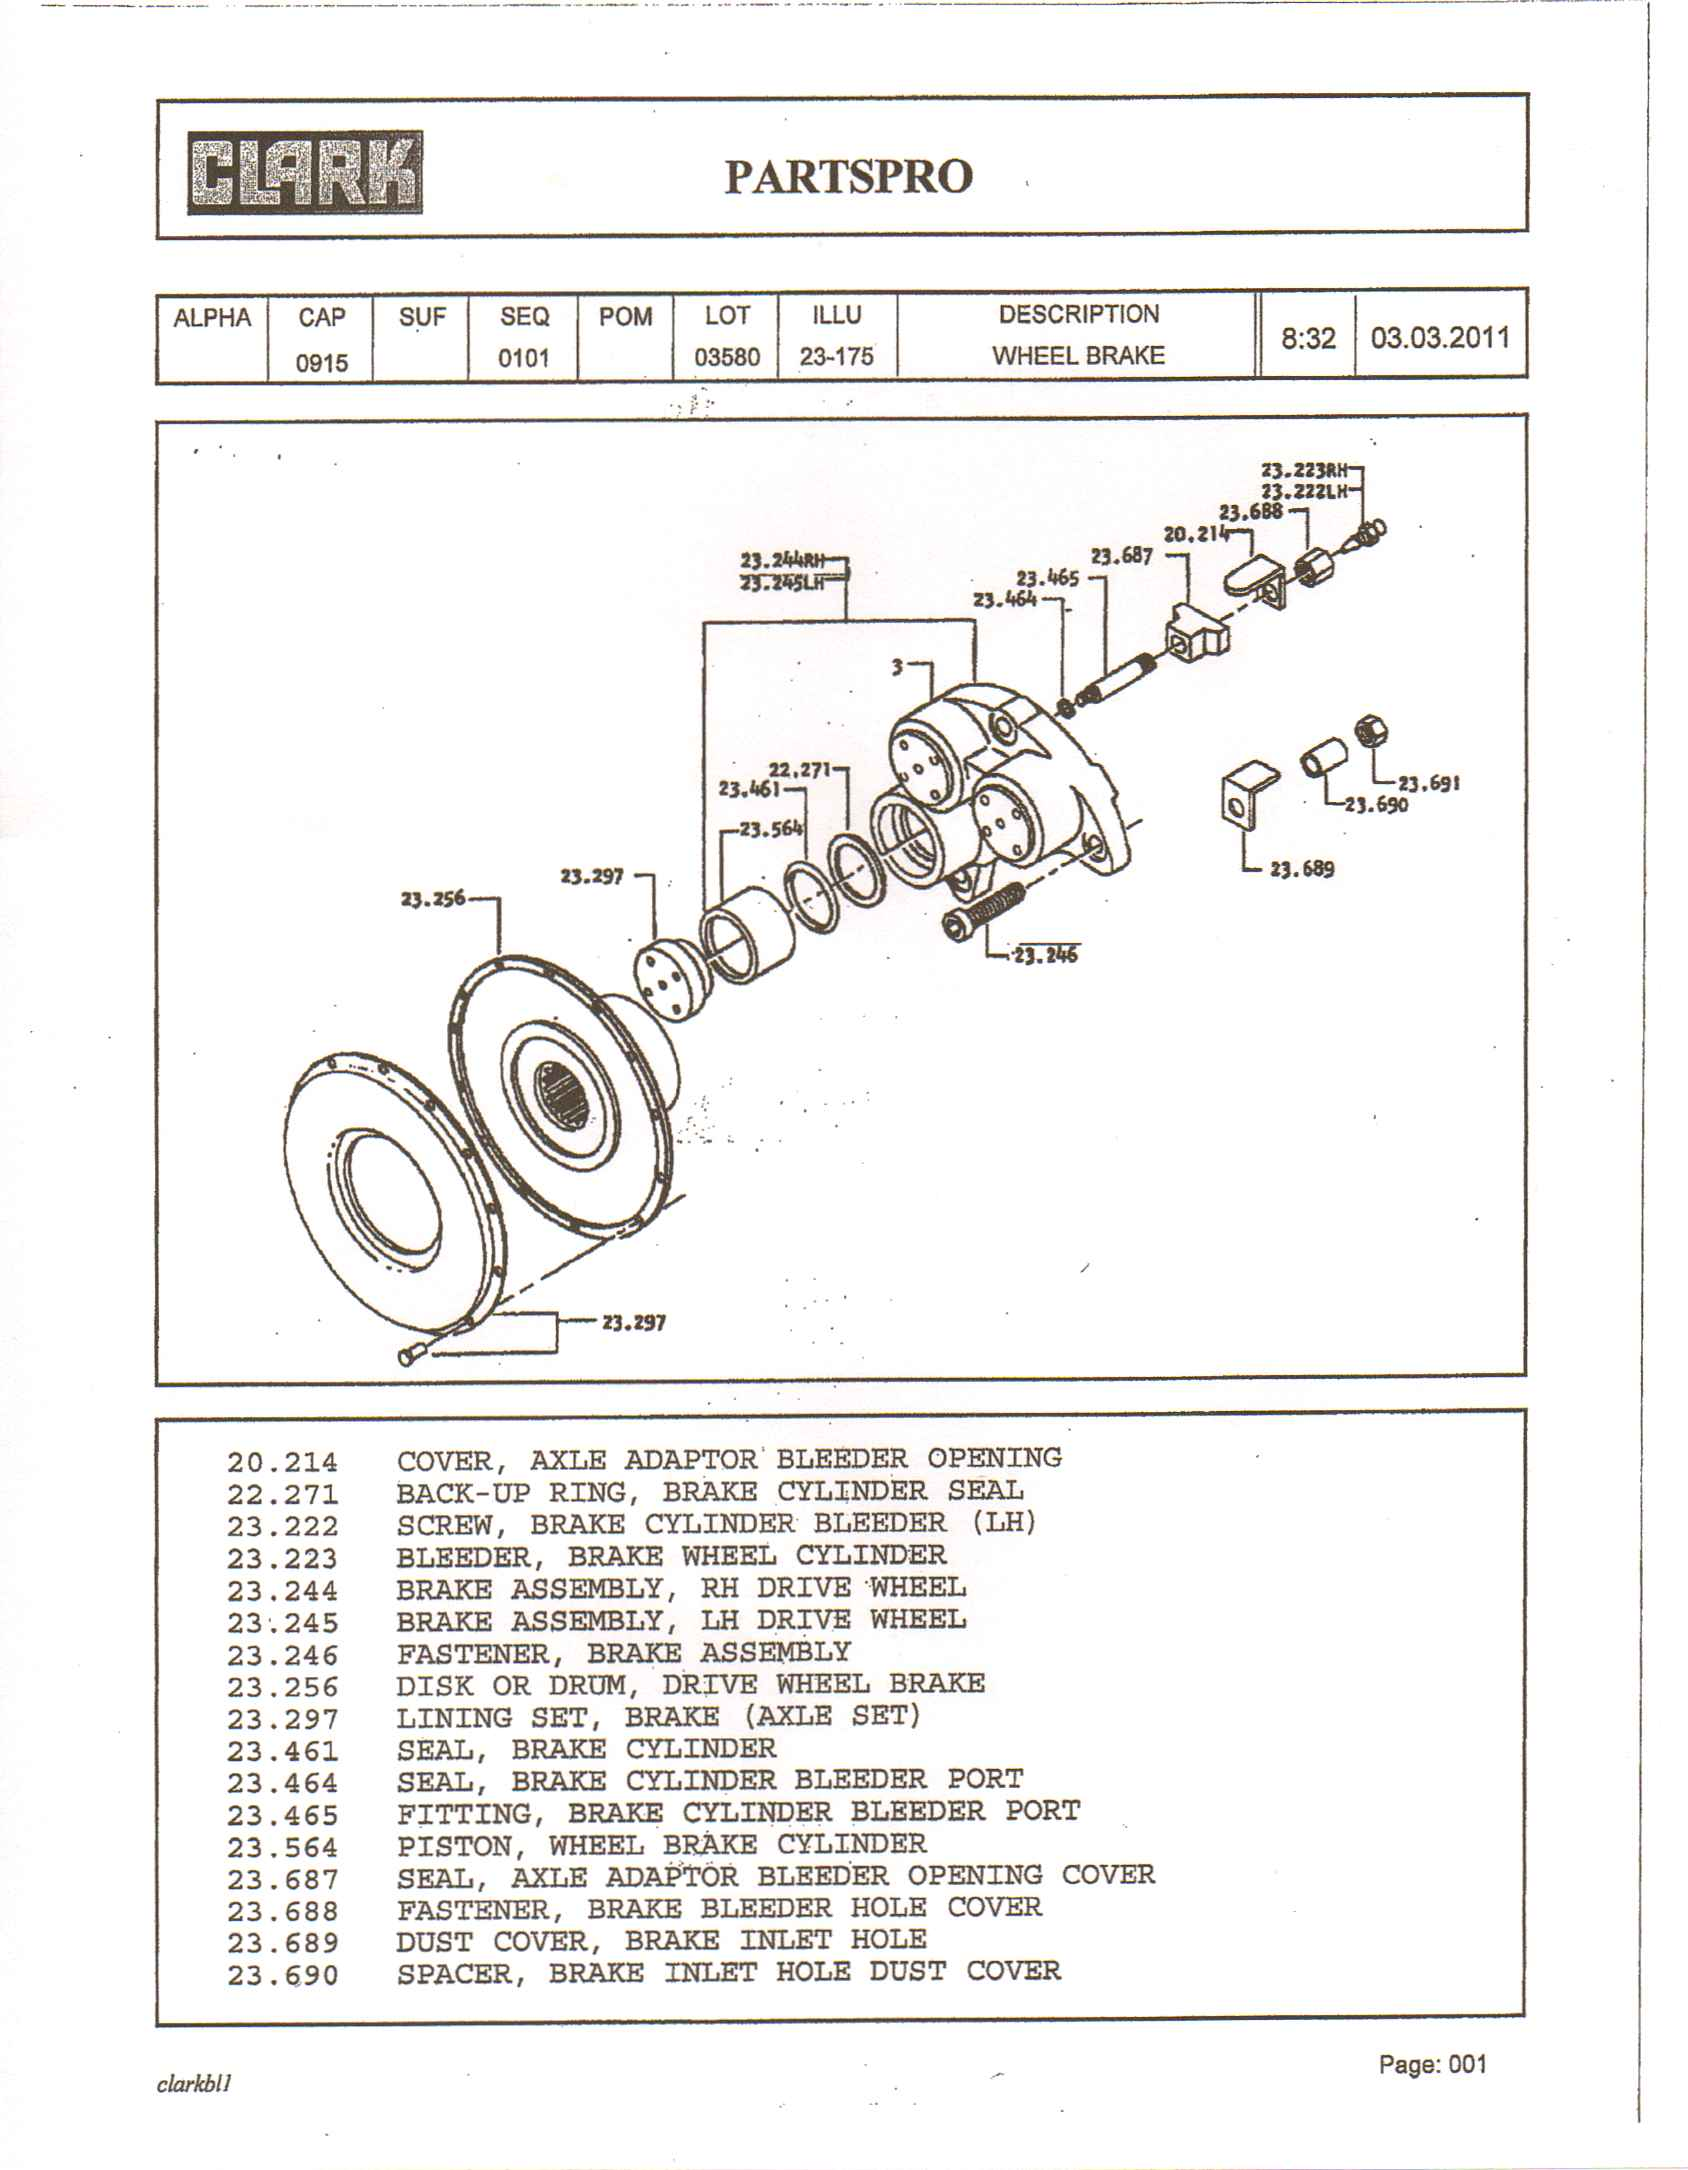 1969 Hyster Forklift Wiring Diagram Quick Start Guide Of 50 Clark Schematic Name Rh 6 5 3 Systembeimroulette De Fork Lift